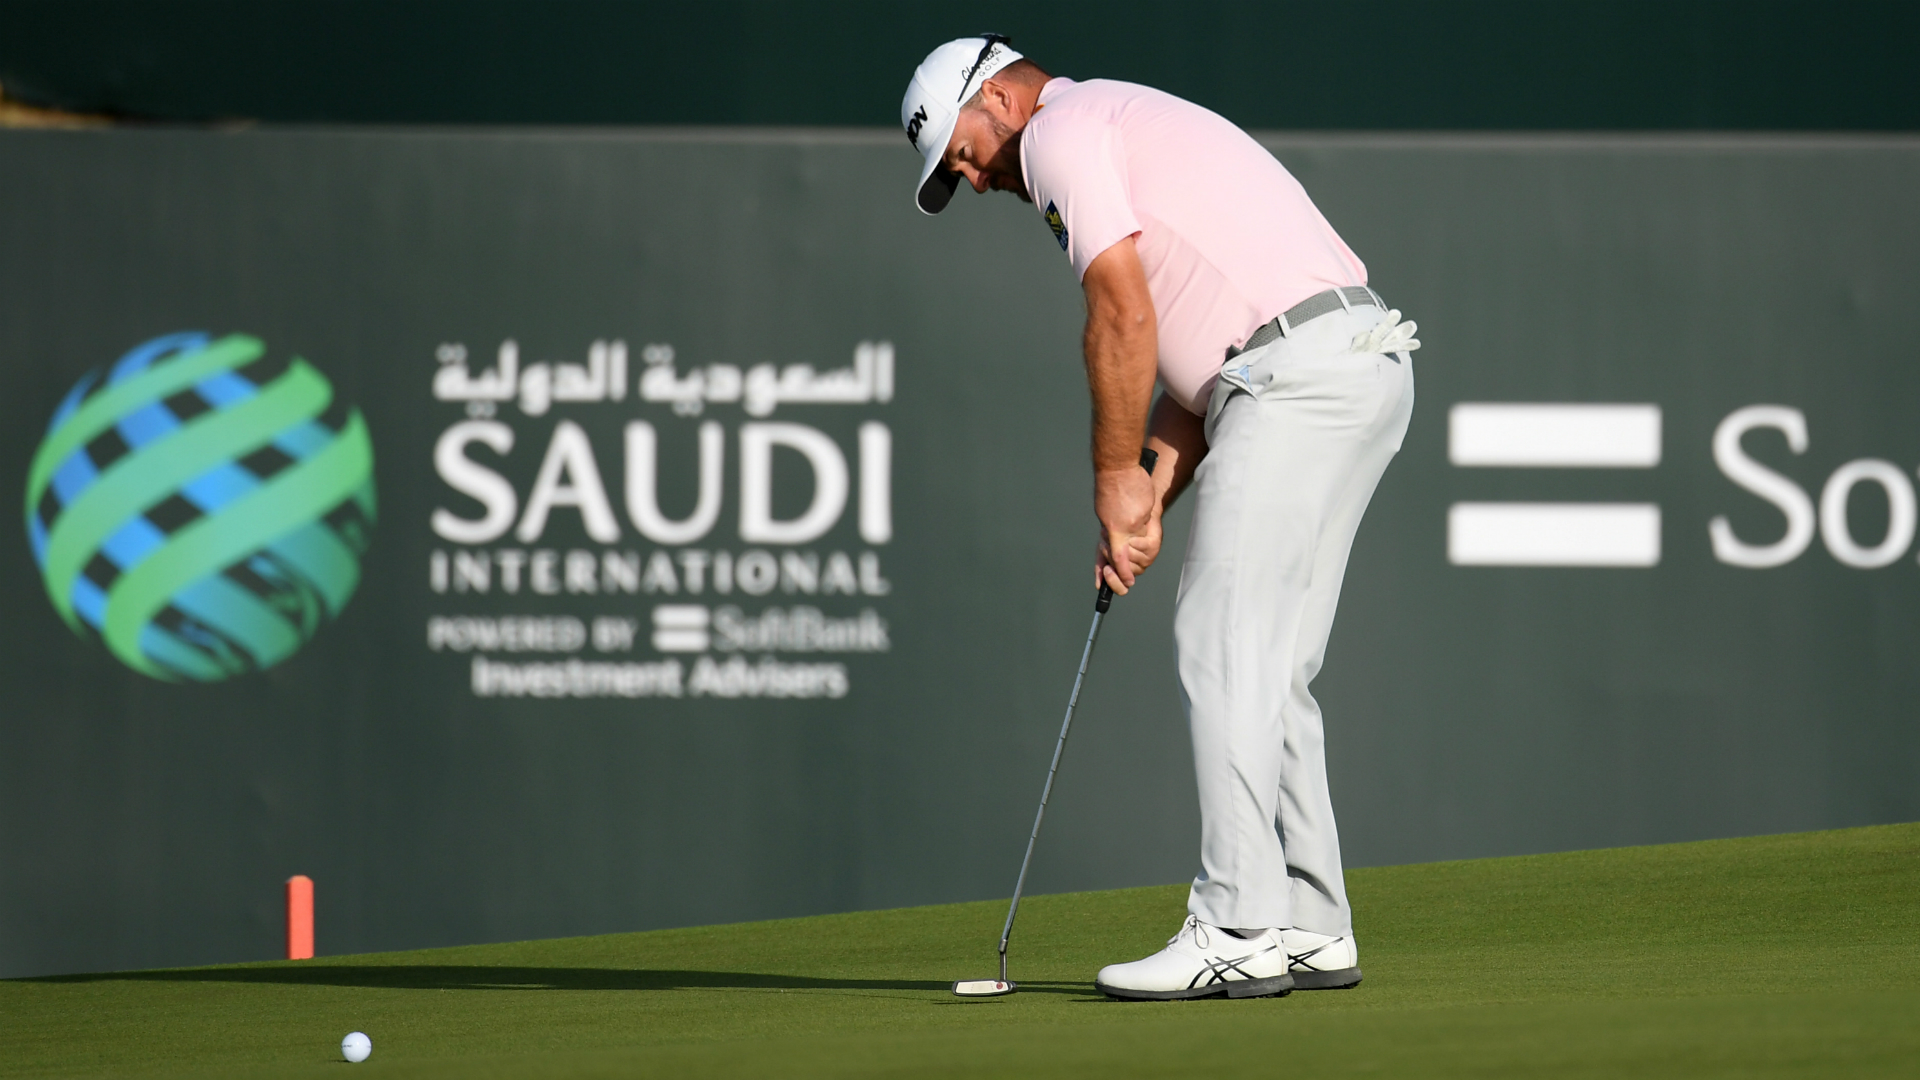 McDowell hits the front in Saudi Arabia as Perez falls away